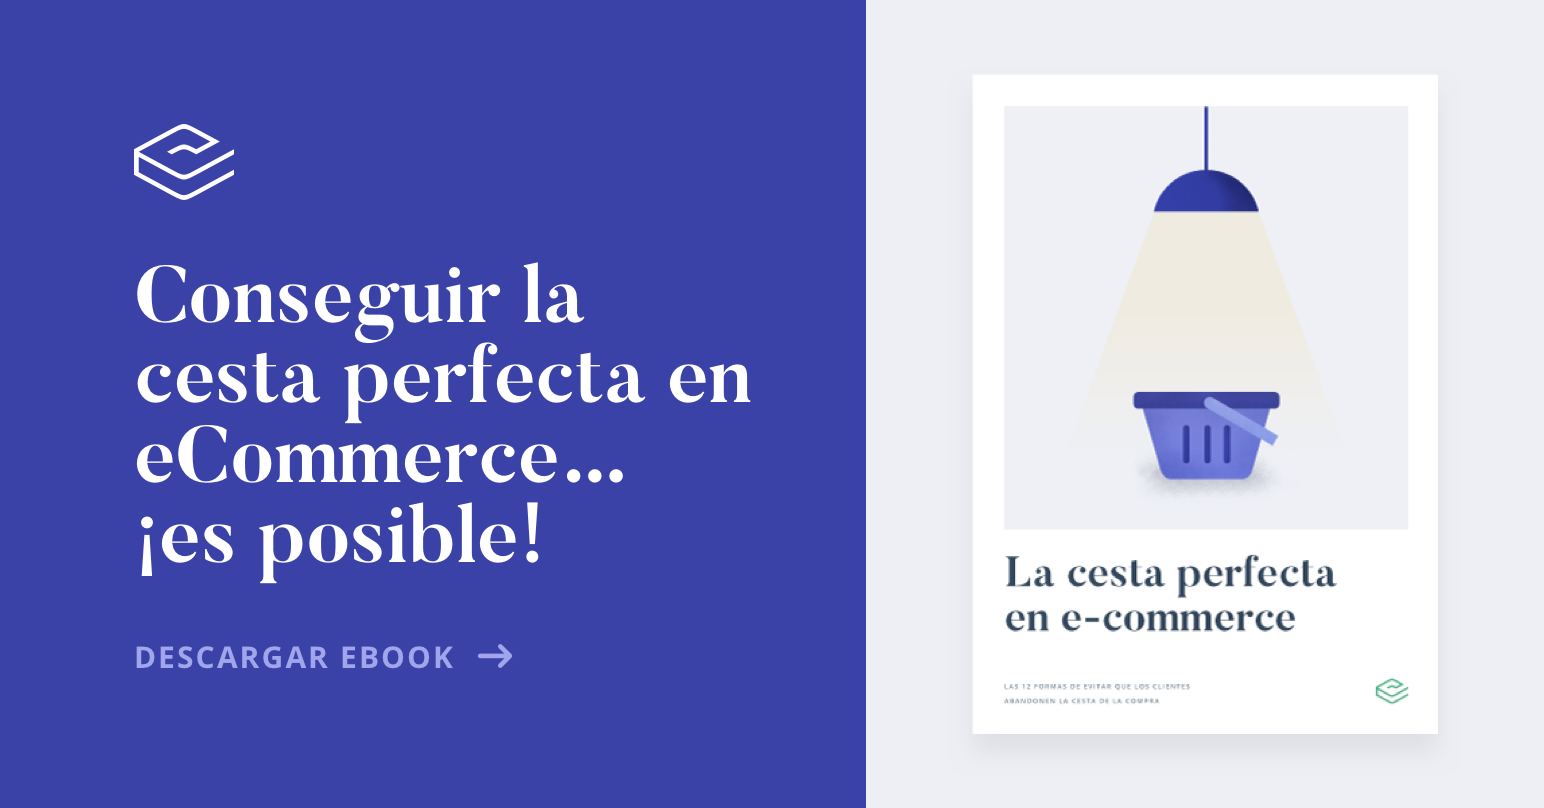 CTA - SPA - La cesta perfecta en ecommerce